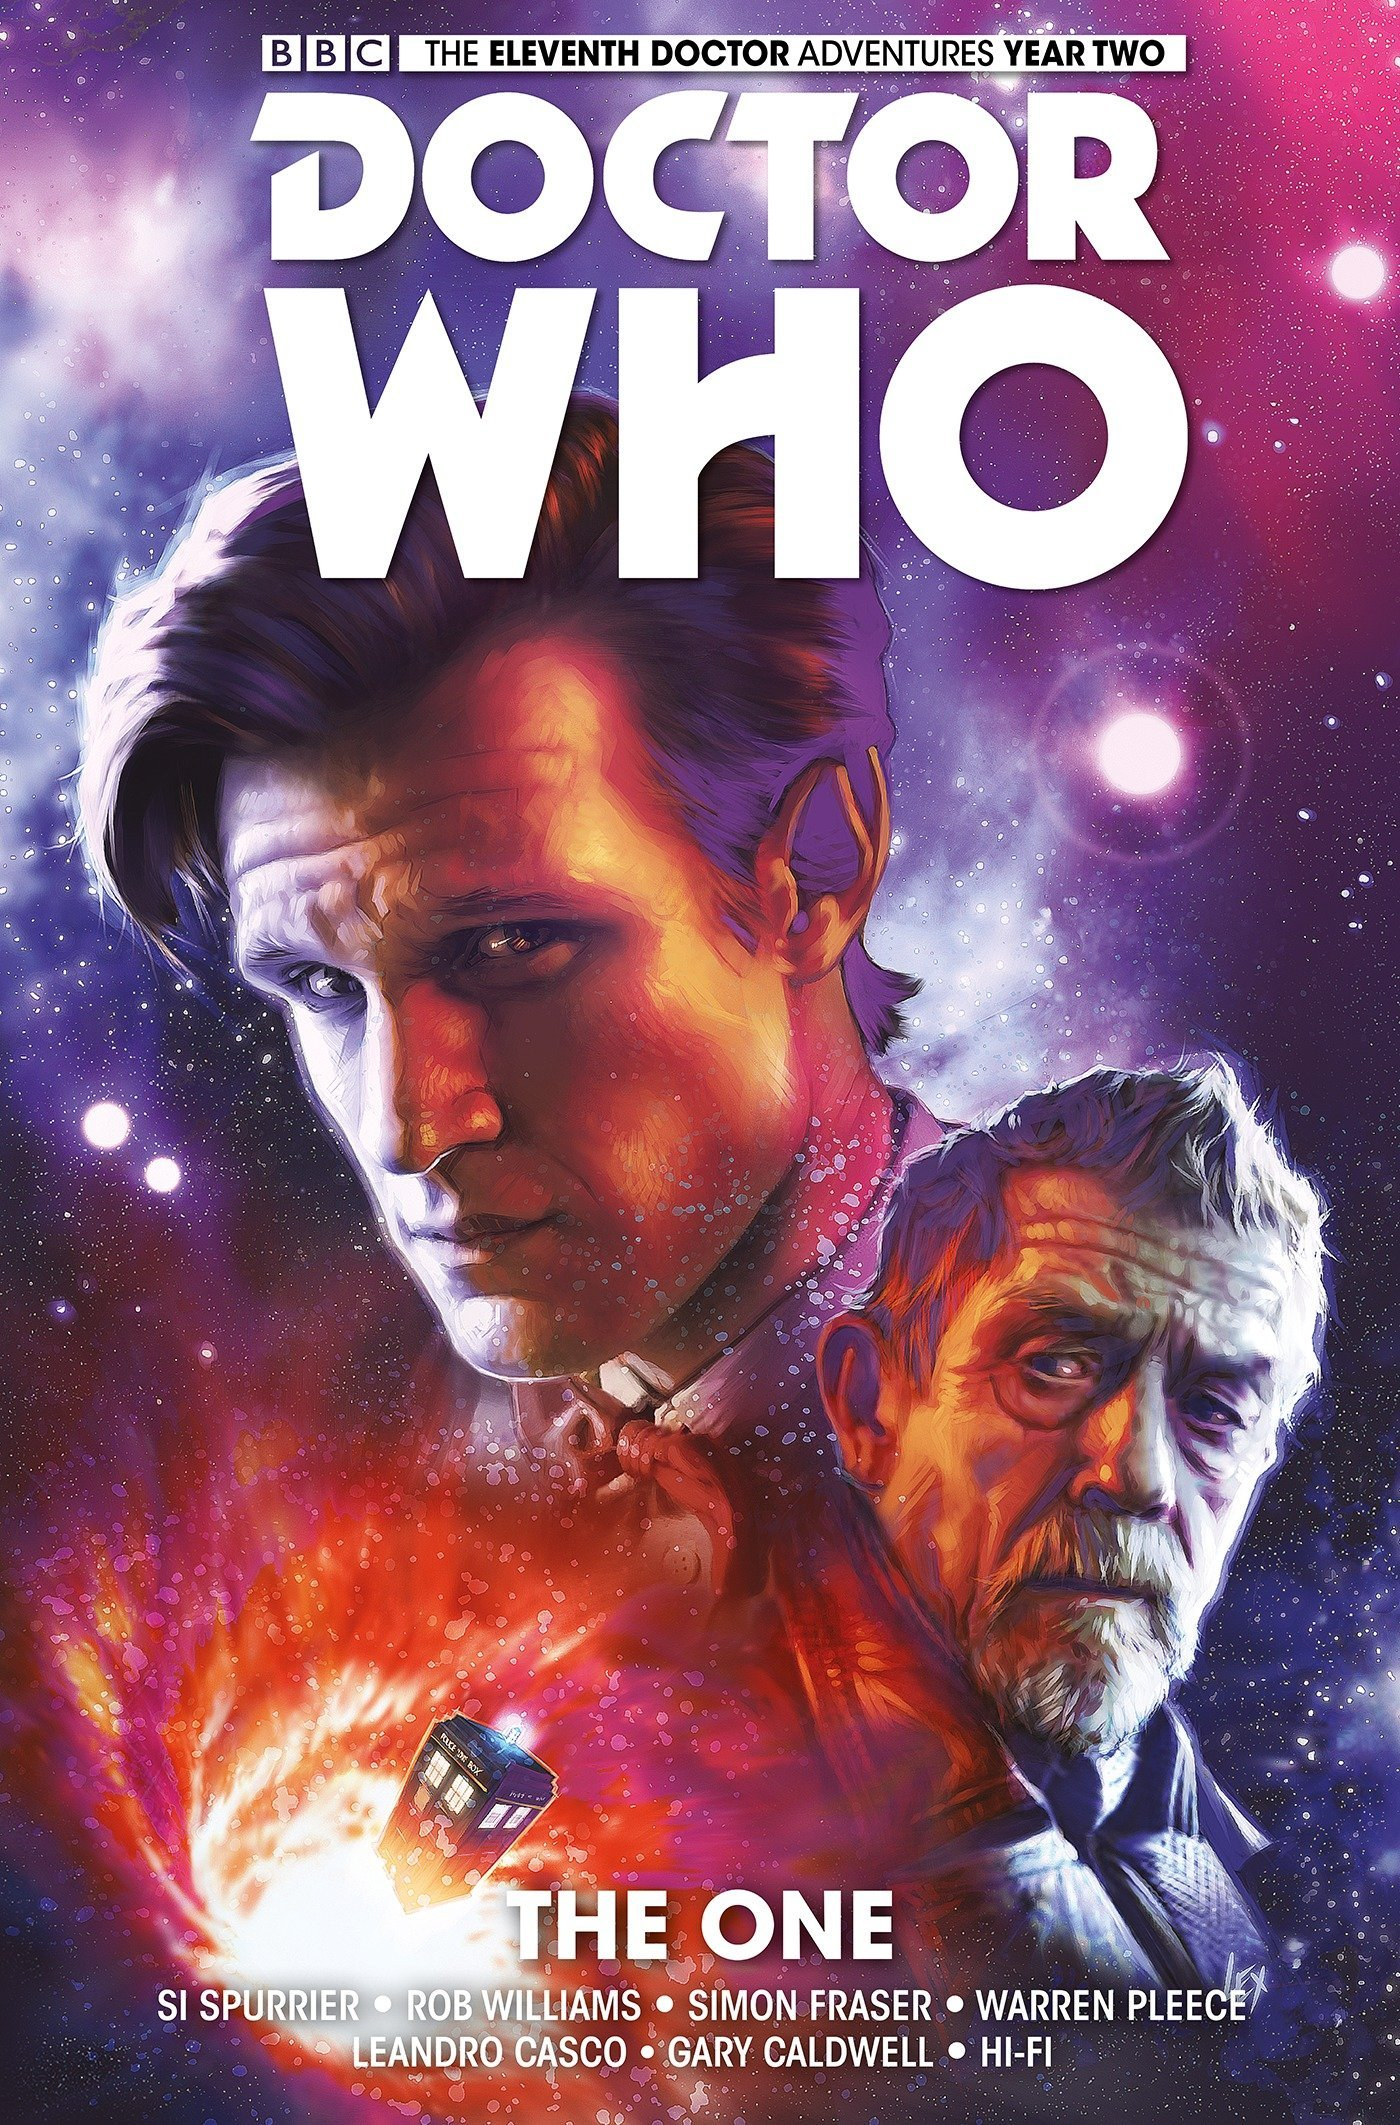 Doctor Who: The Eleventh Doctor Volume 5 - The One Hardcover – September 27, 2016